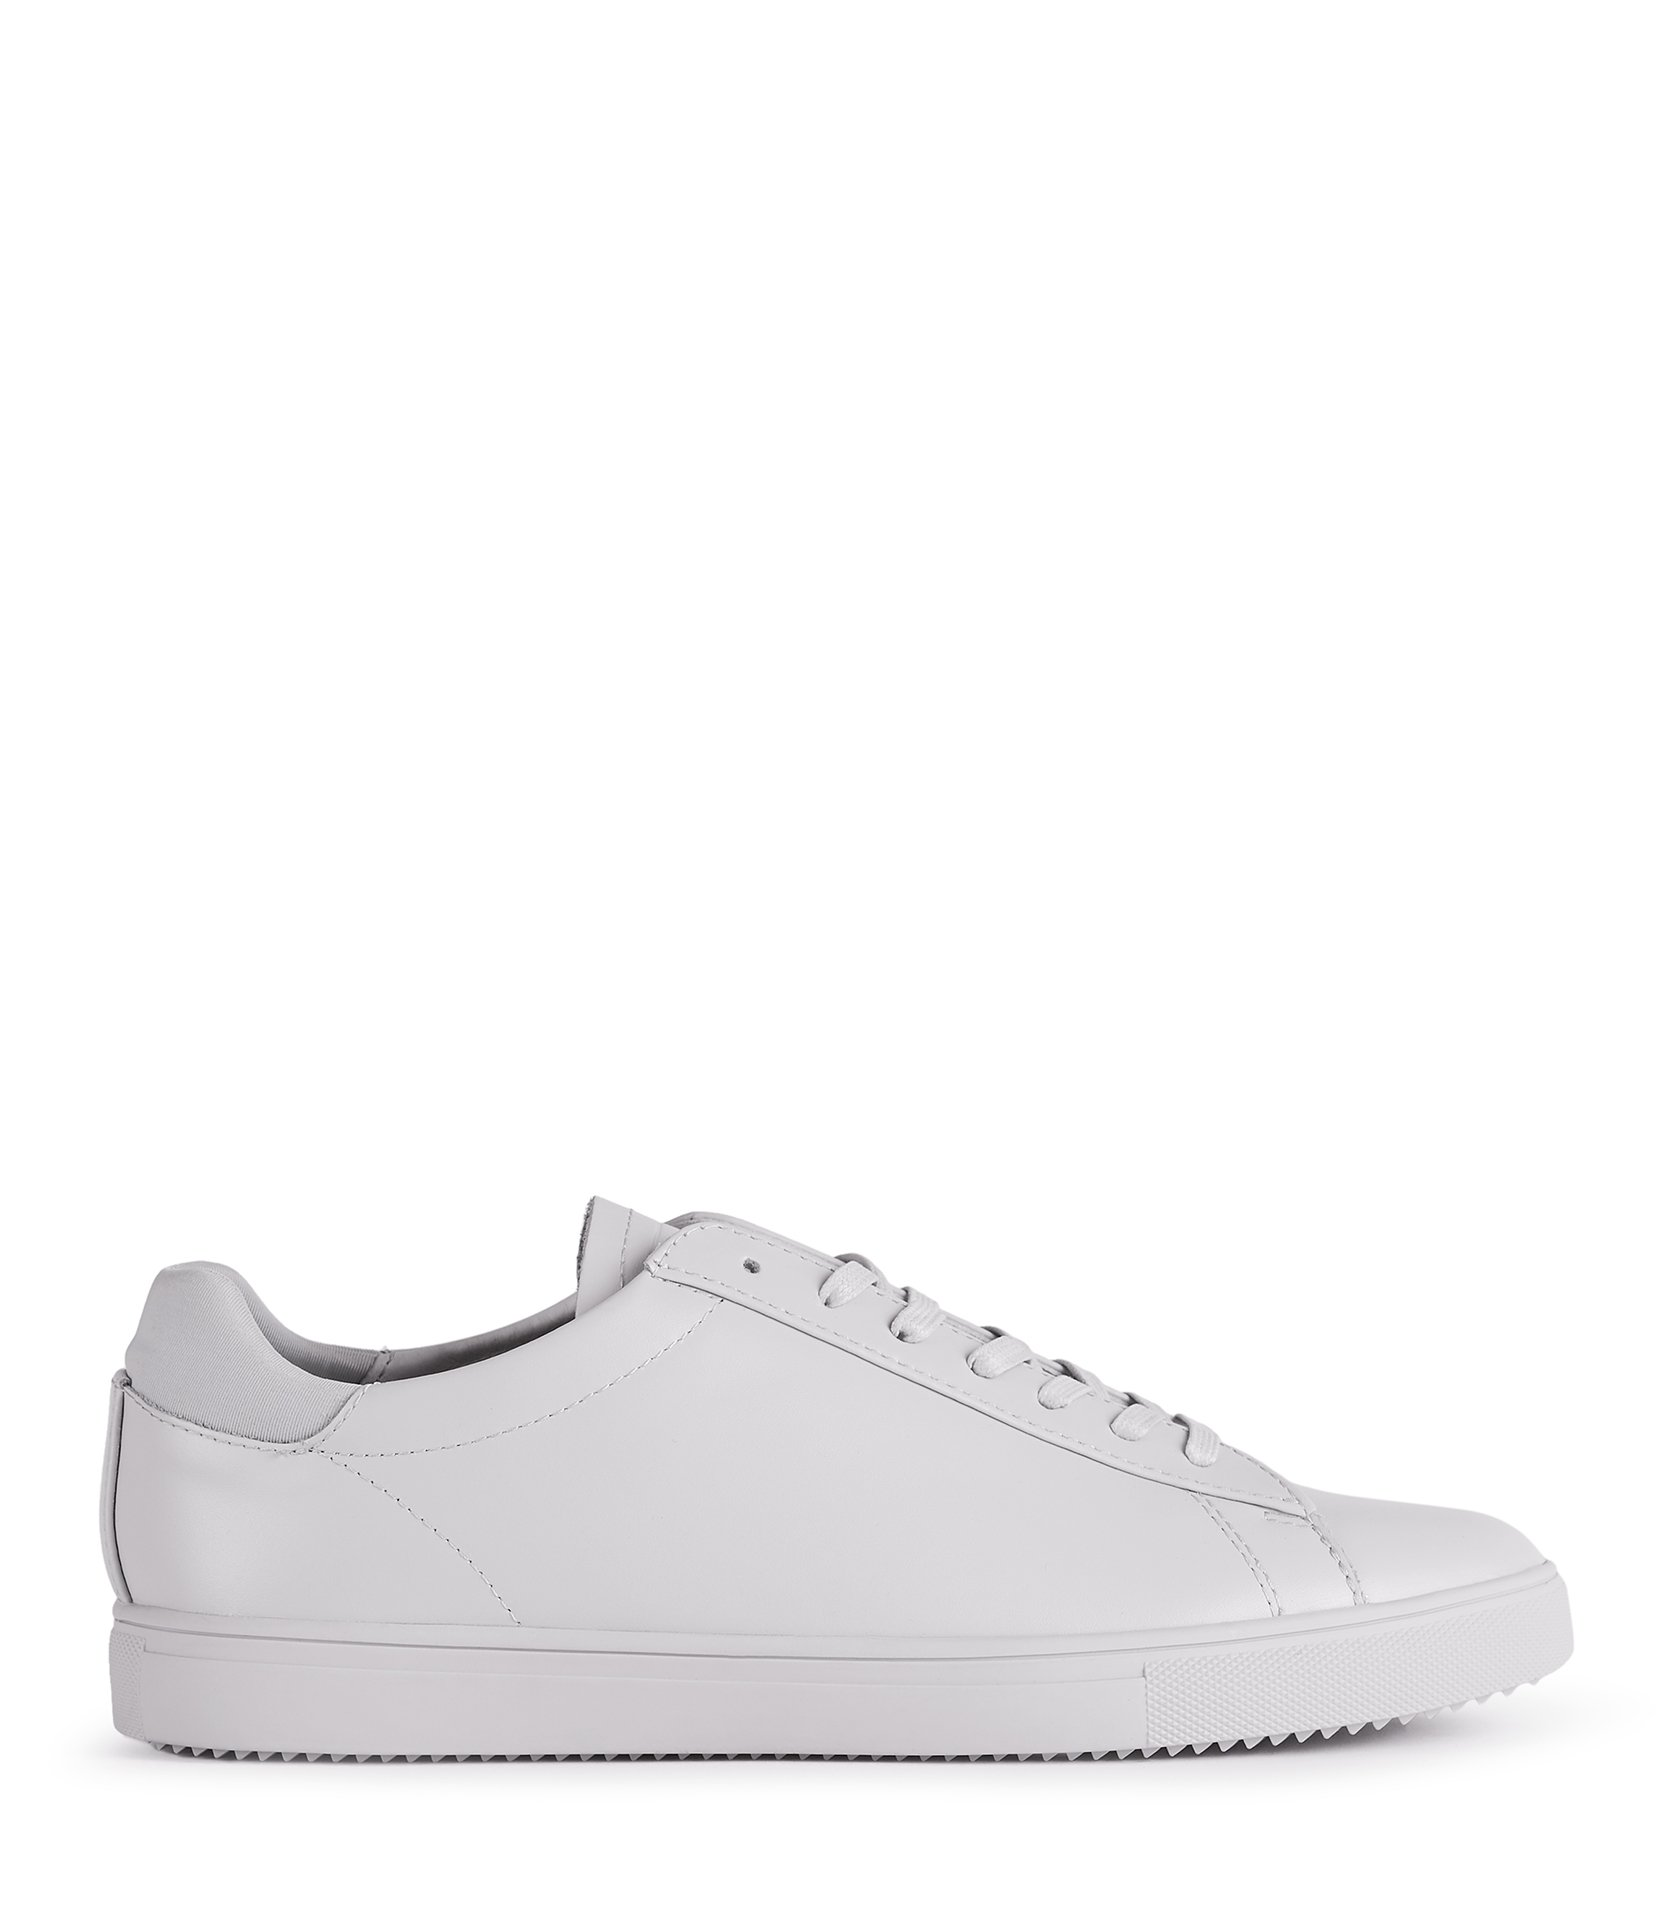 Reiss Grey Clae Leather Sneakers